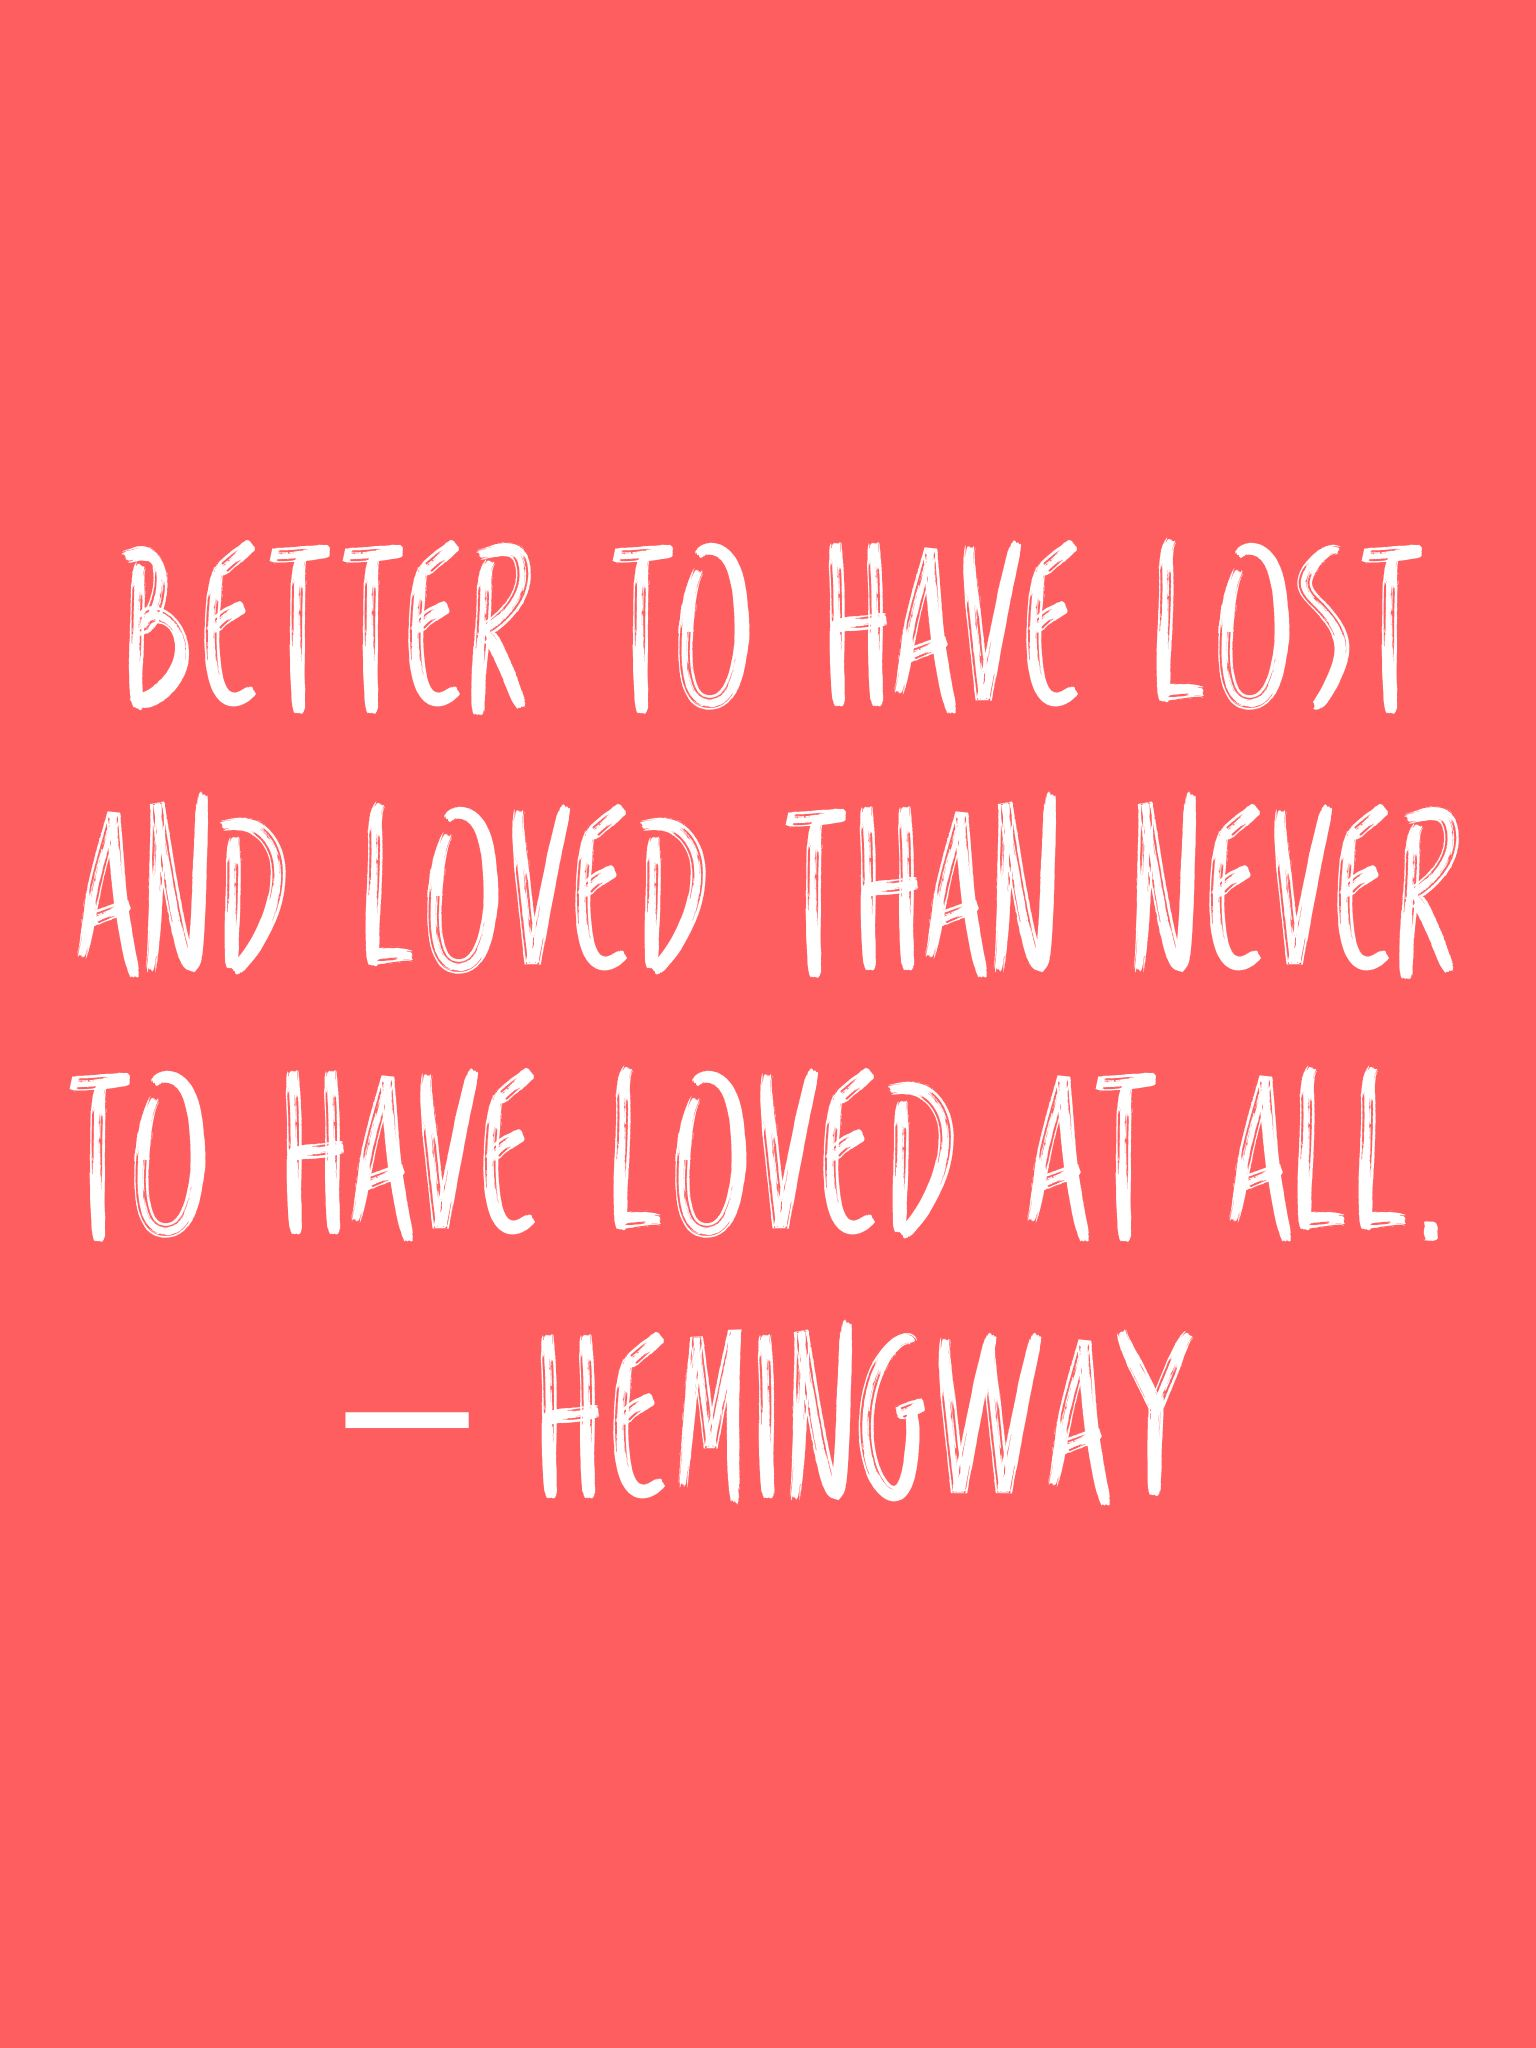 Love Quotes App Better To Have Lost And Loved Than Never To Have Loved At All